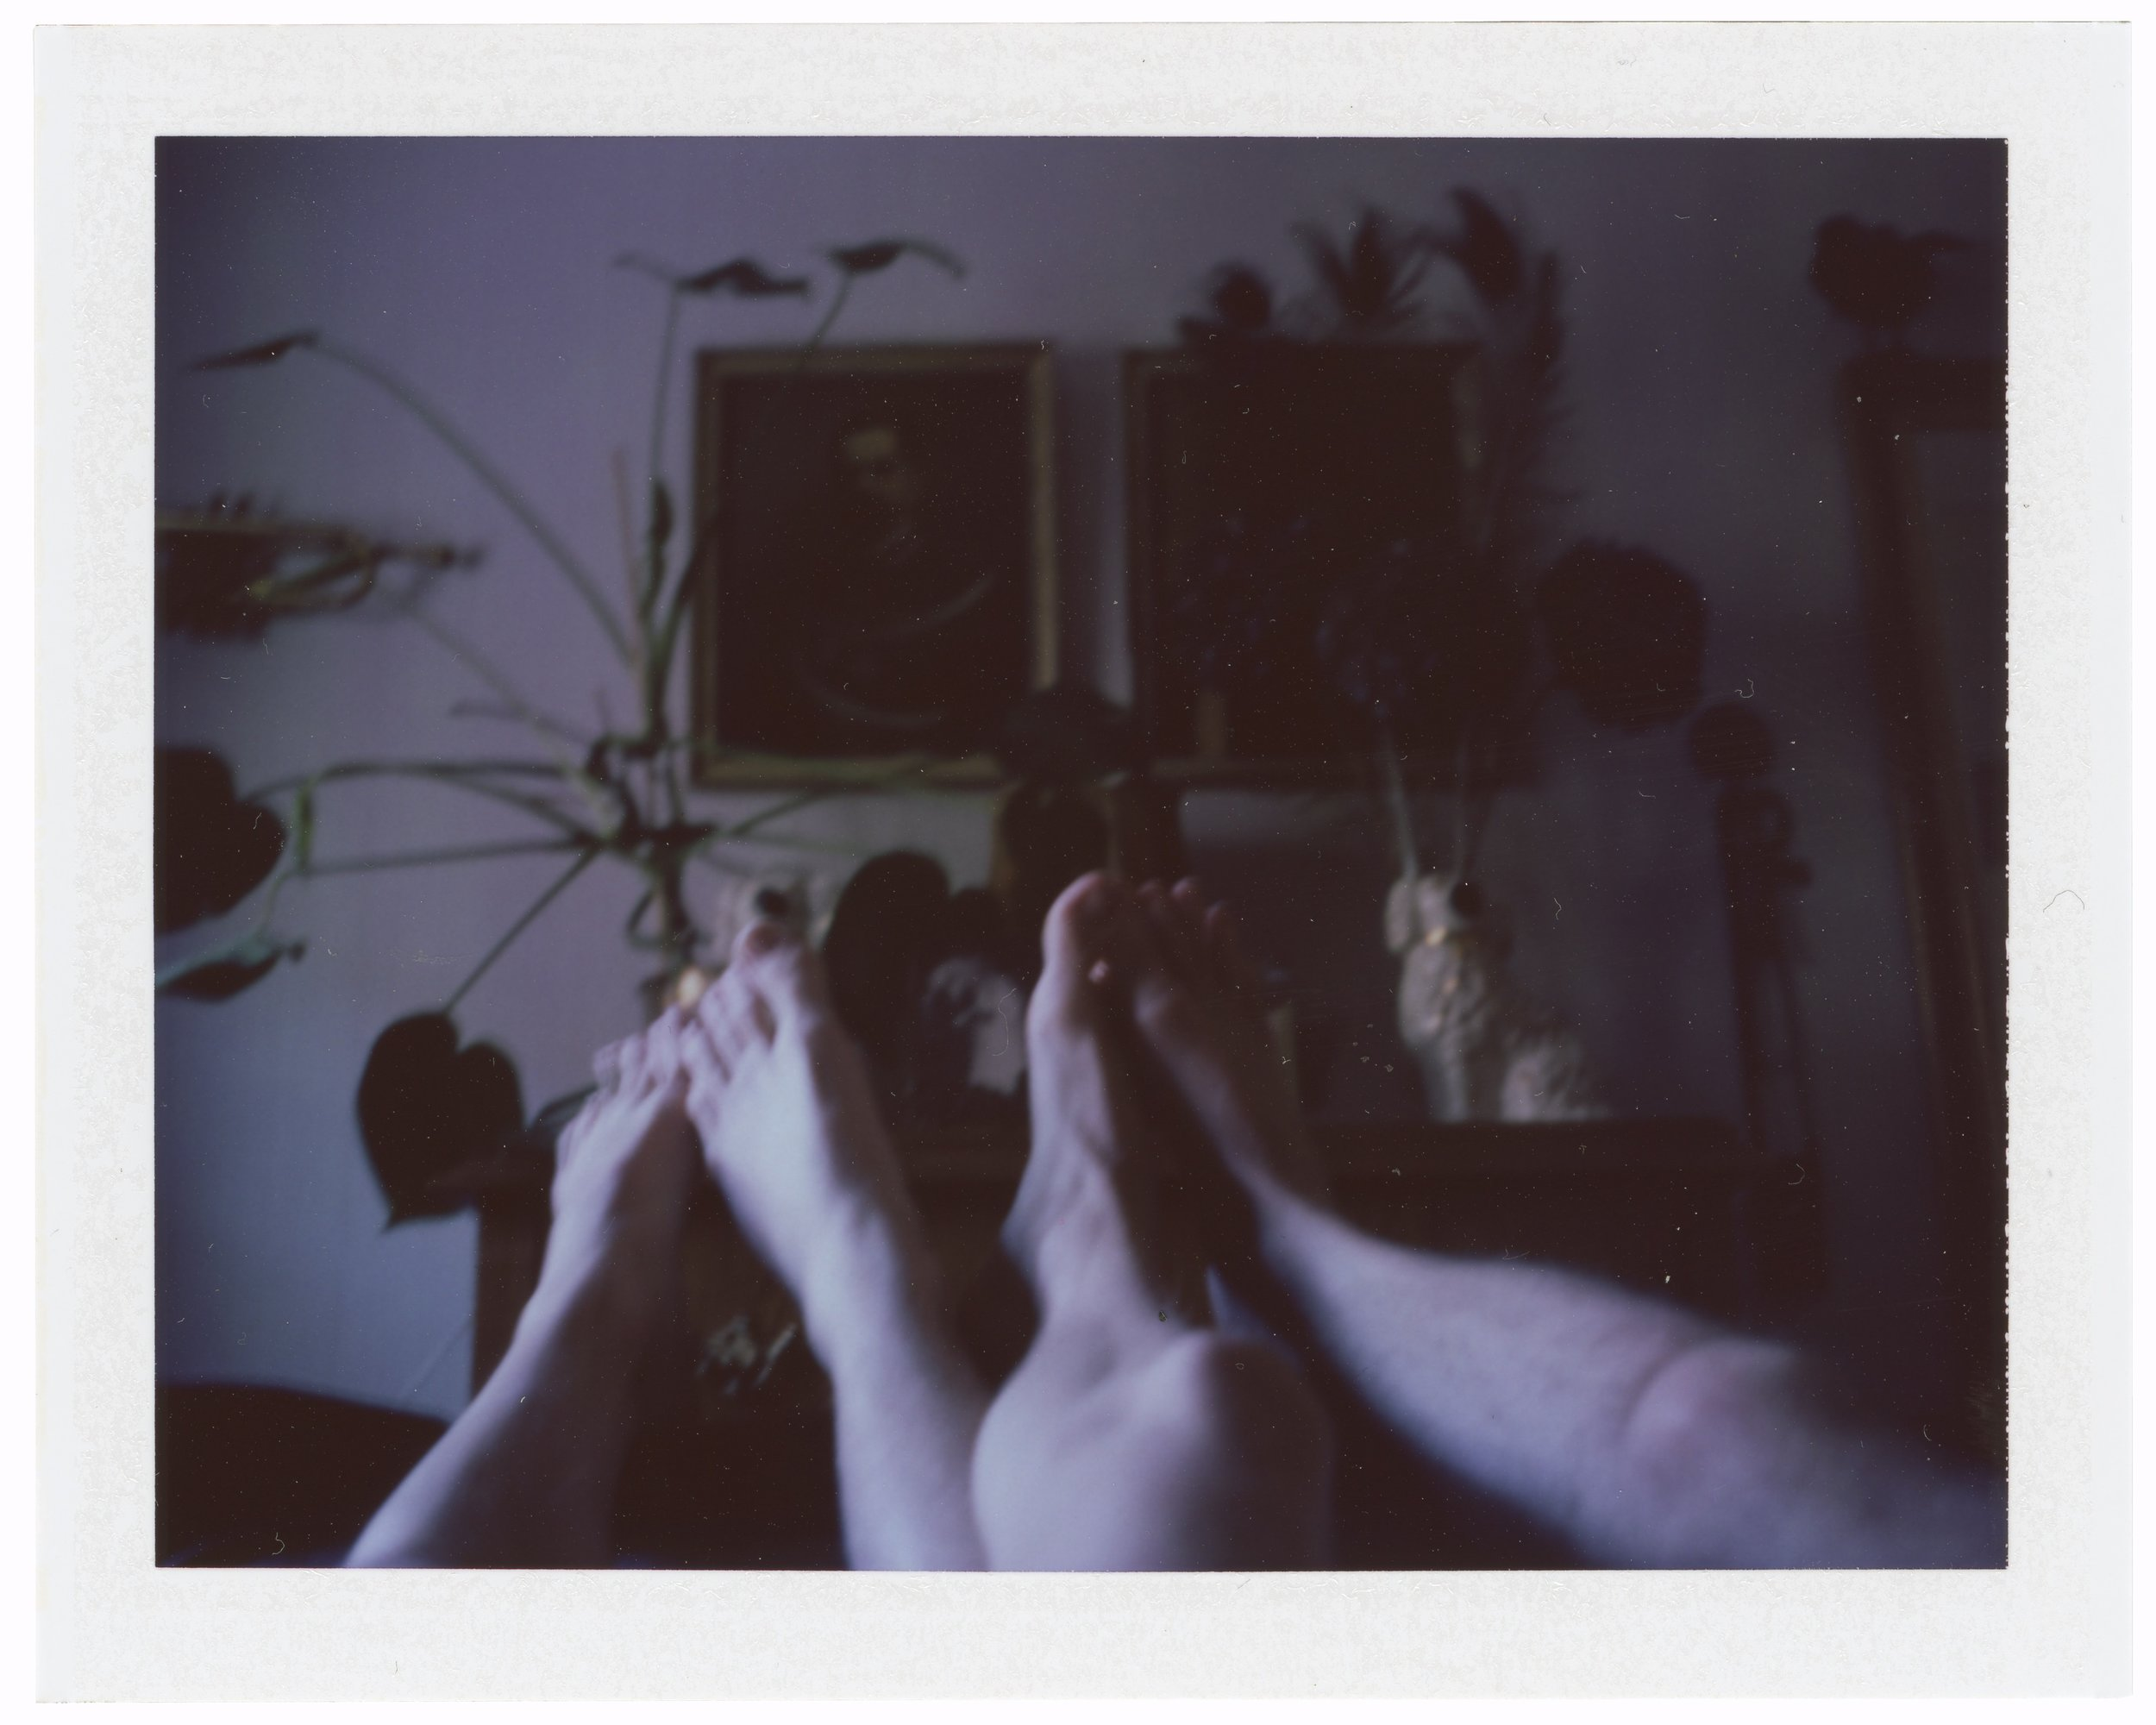 Before sunrise, January 20 2019 (Polaroid 360 Land, FP-100C)